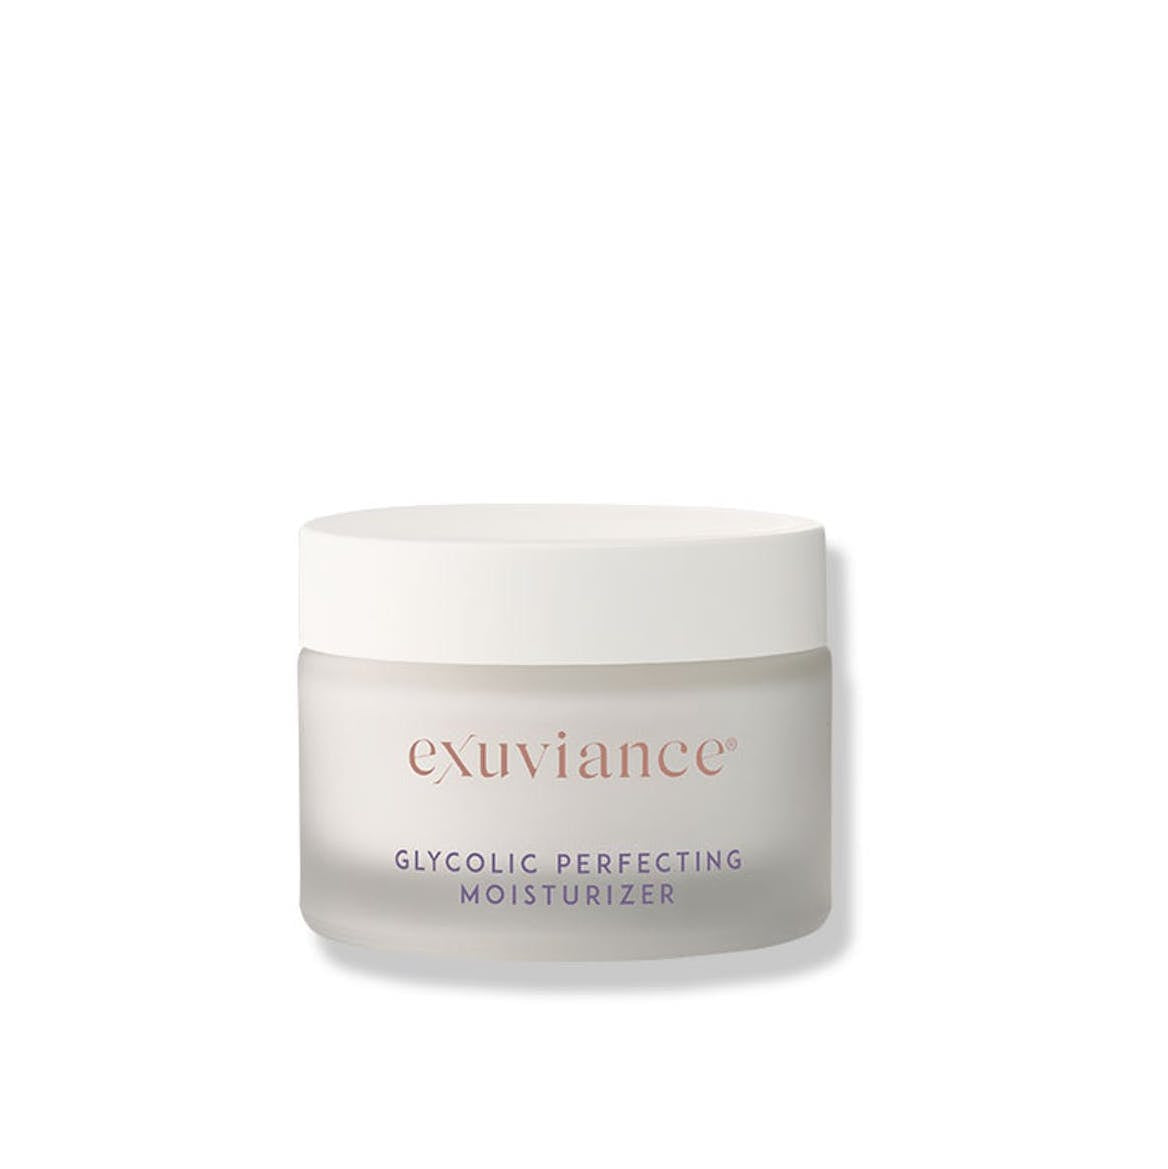 Exuviance Glycolic Perfecting Moisturizer 45g